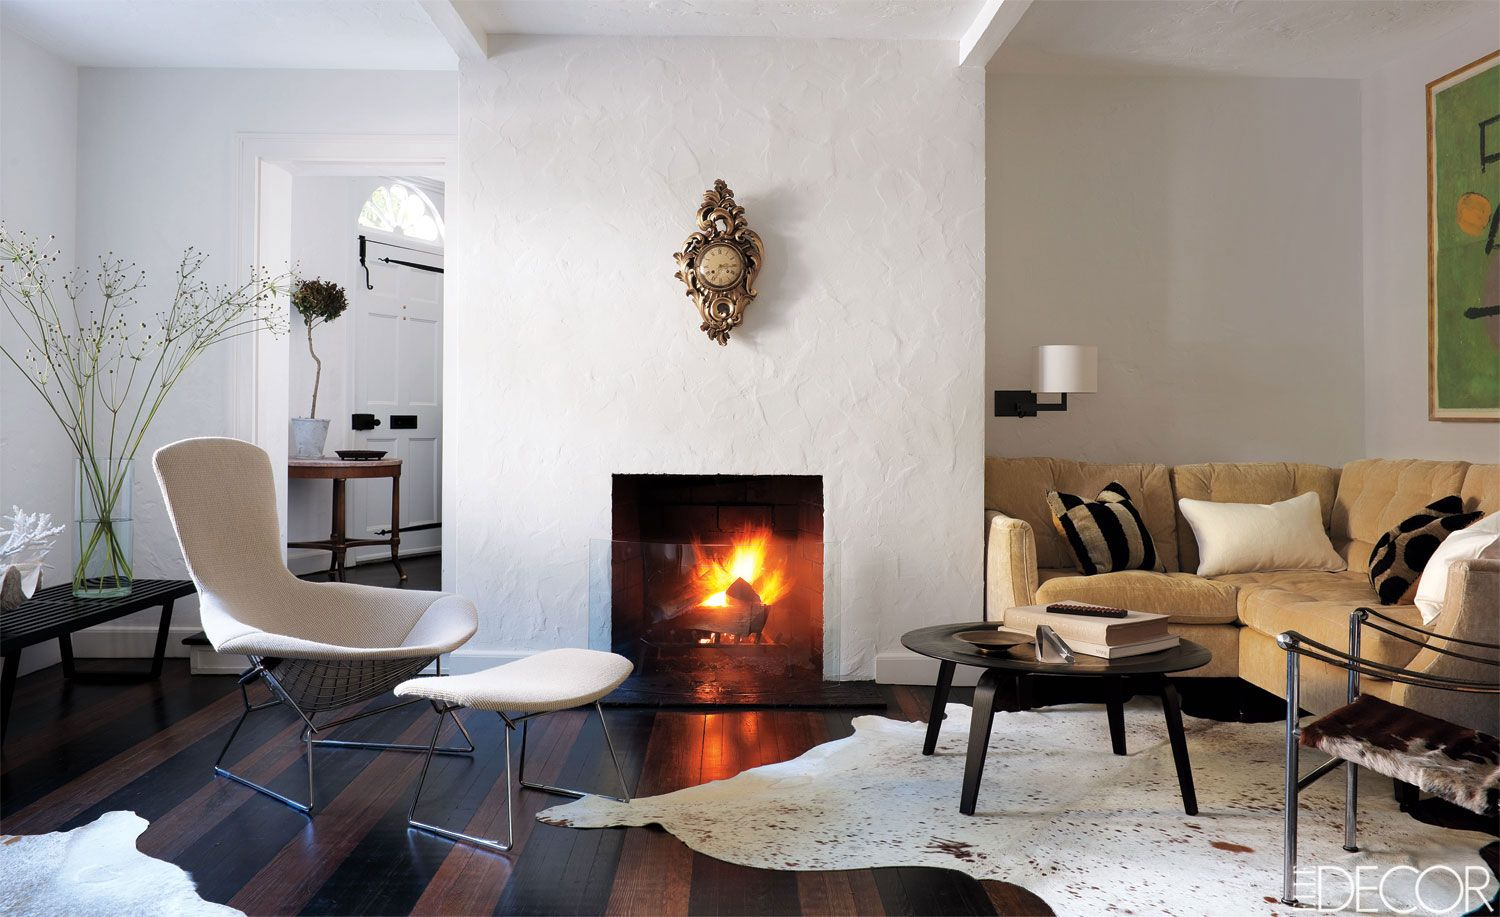 21 unique fireplace mantel ideas modern fireplace designs - Decorating Ideas For Living Rooms With Fireplaces